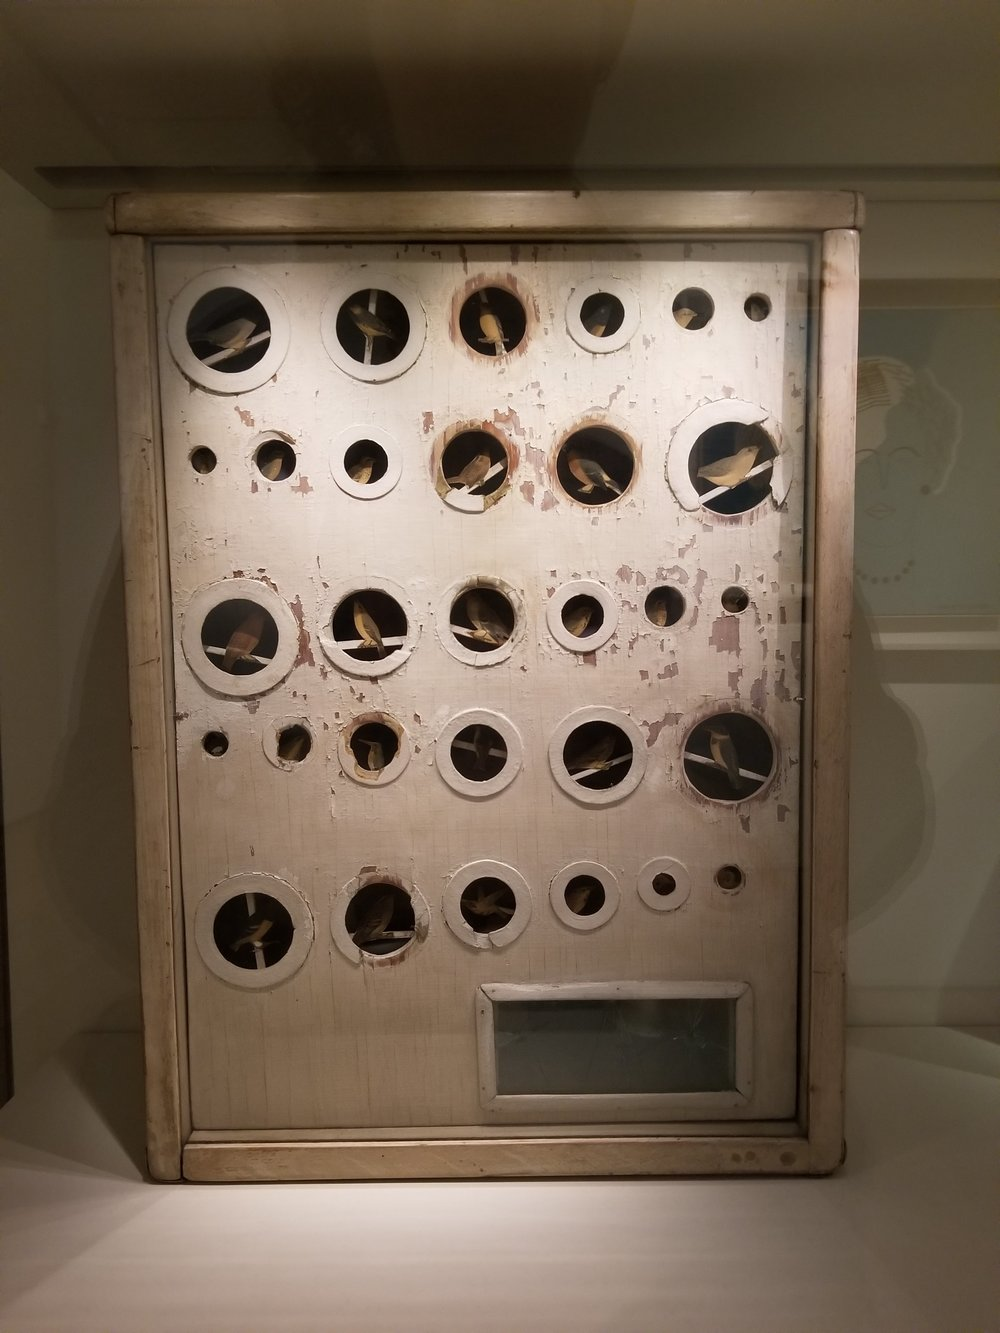 Another Joseph Cornell box. This one with birds.